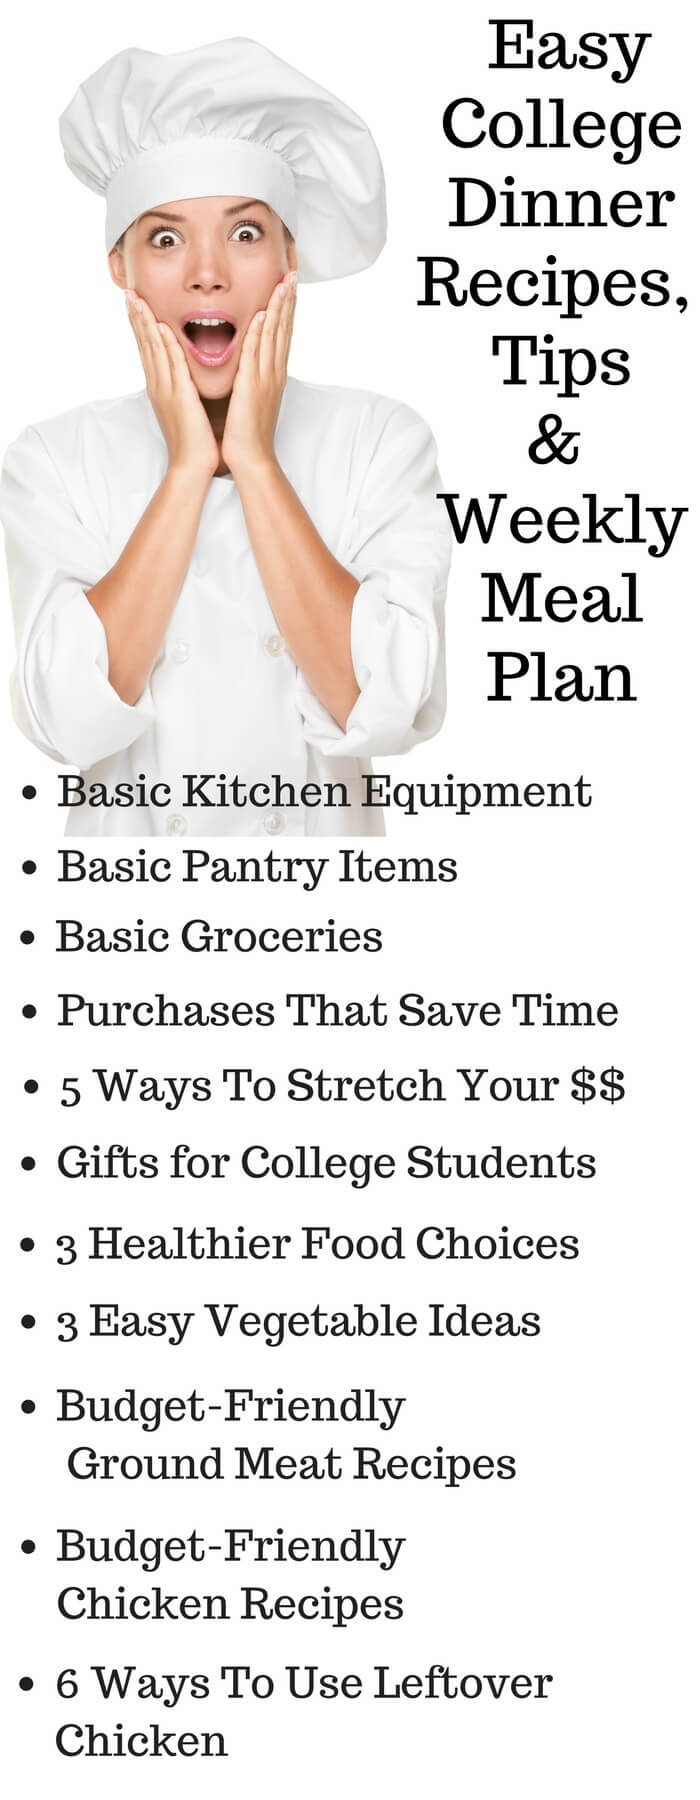 Easy College Dinner Recipes , Tips and Weekly Meal Plan - easy dinner recipes for college students, including lots of tips for budget-friendly, time-saving meals. Free printable weekly dinner plan, shopping list and recipes ~ http://jeanetteshealthyliving.com